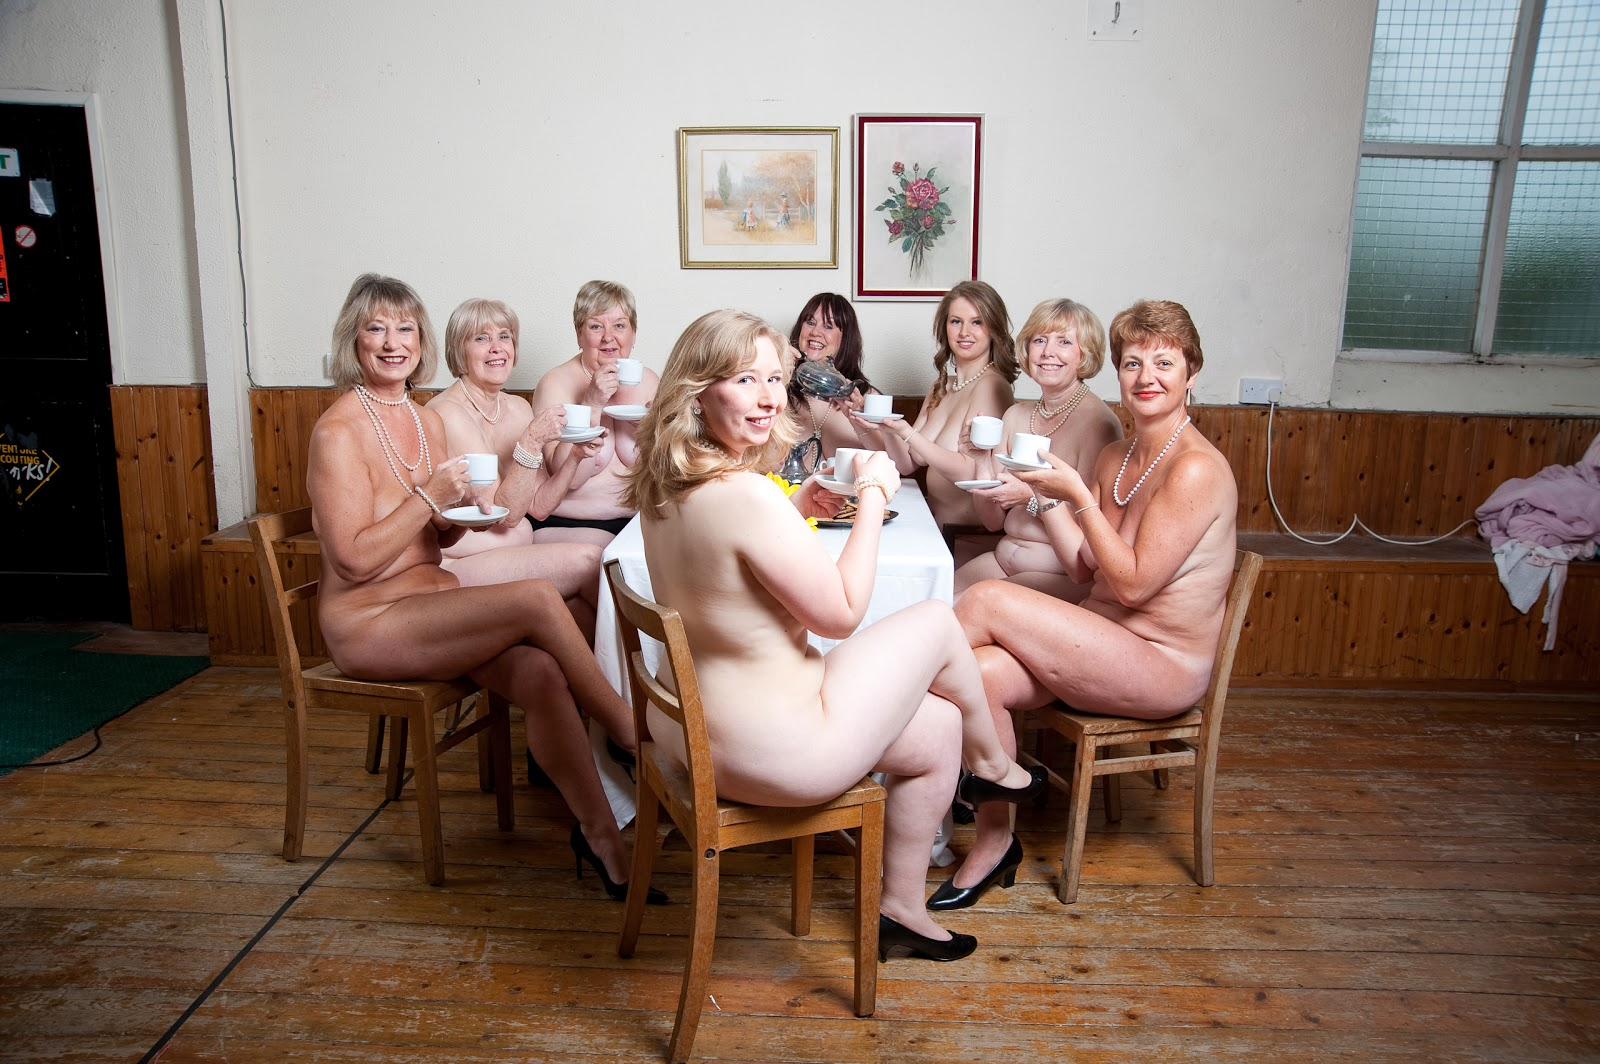 Mature calendar girls